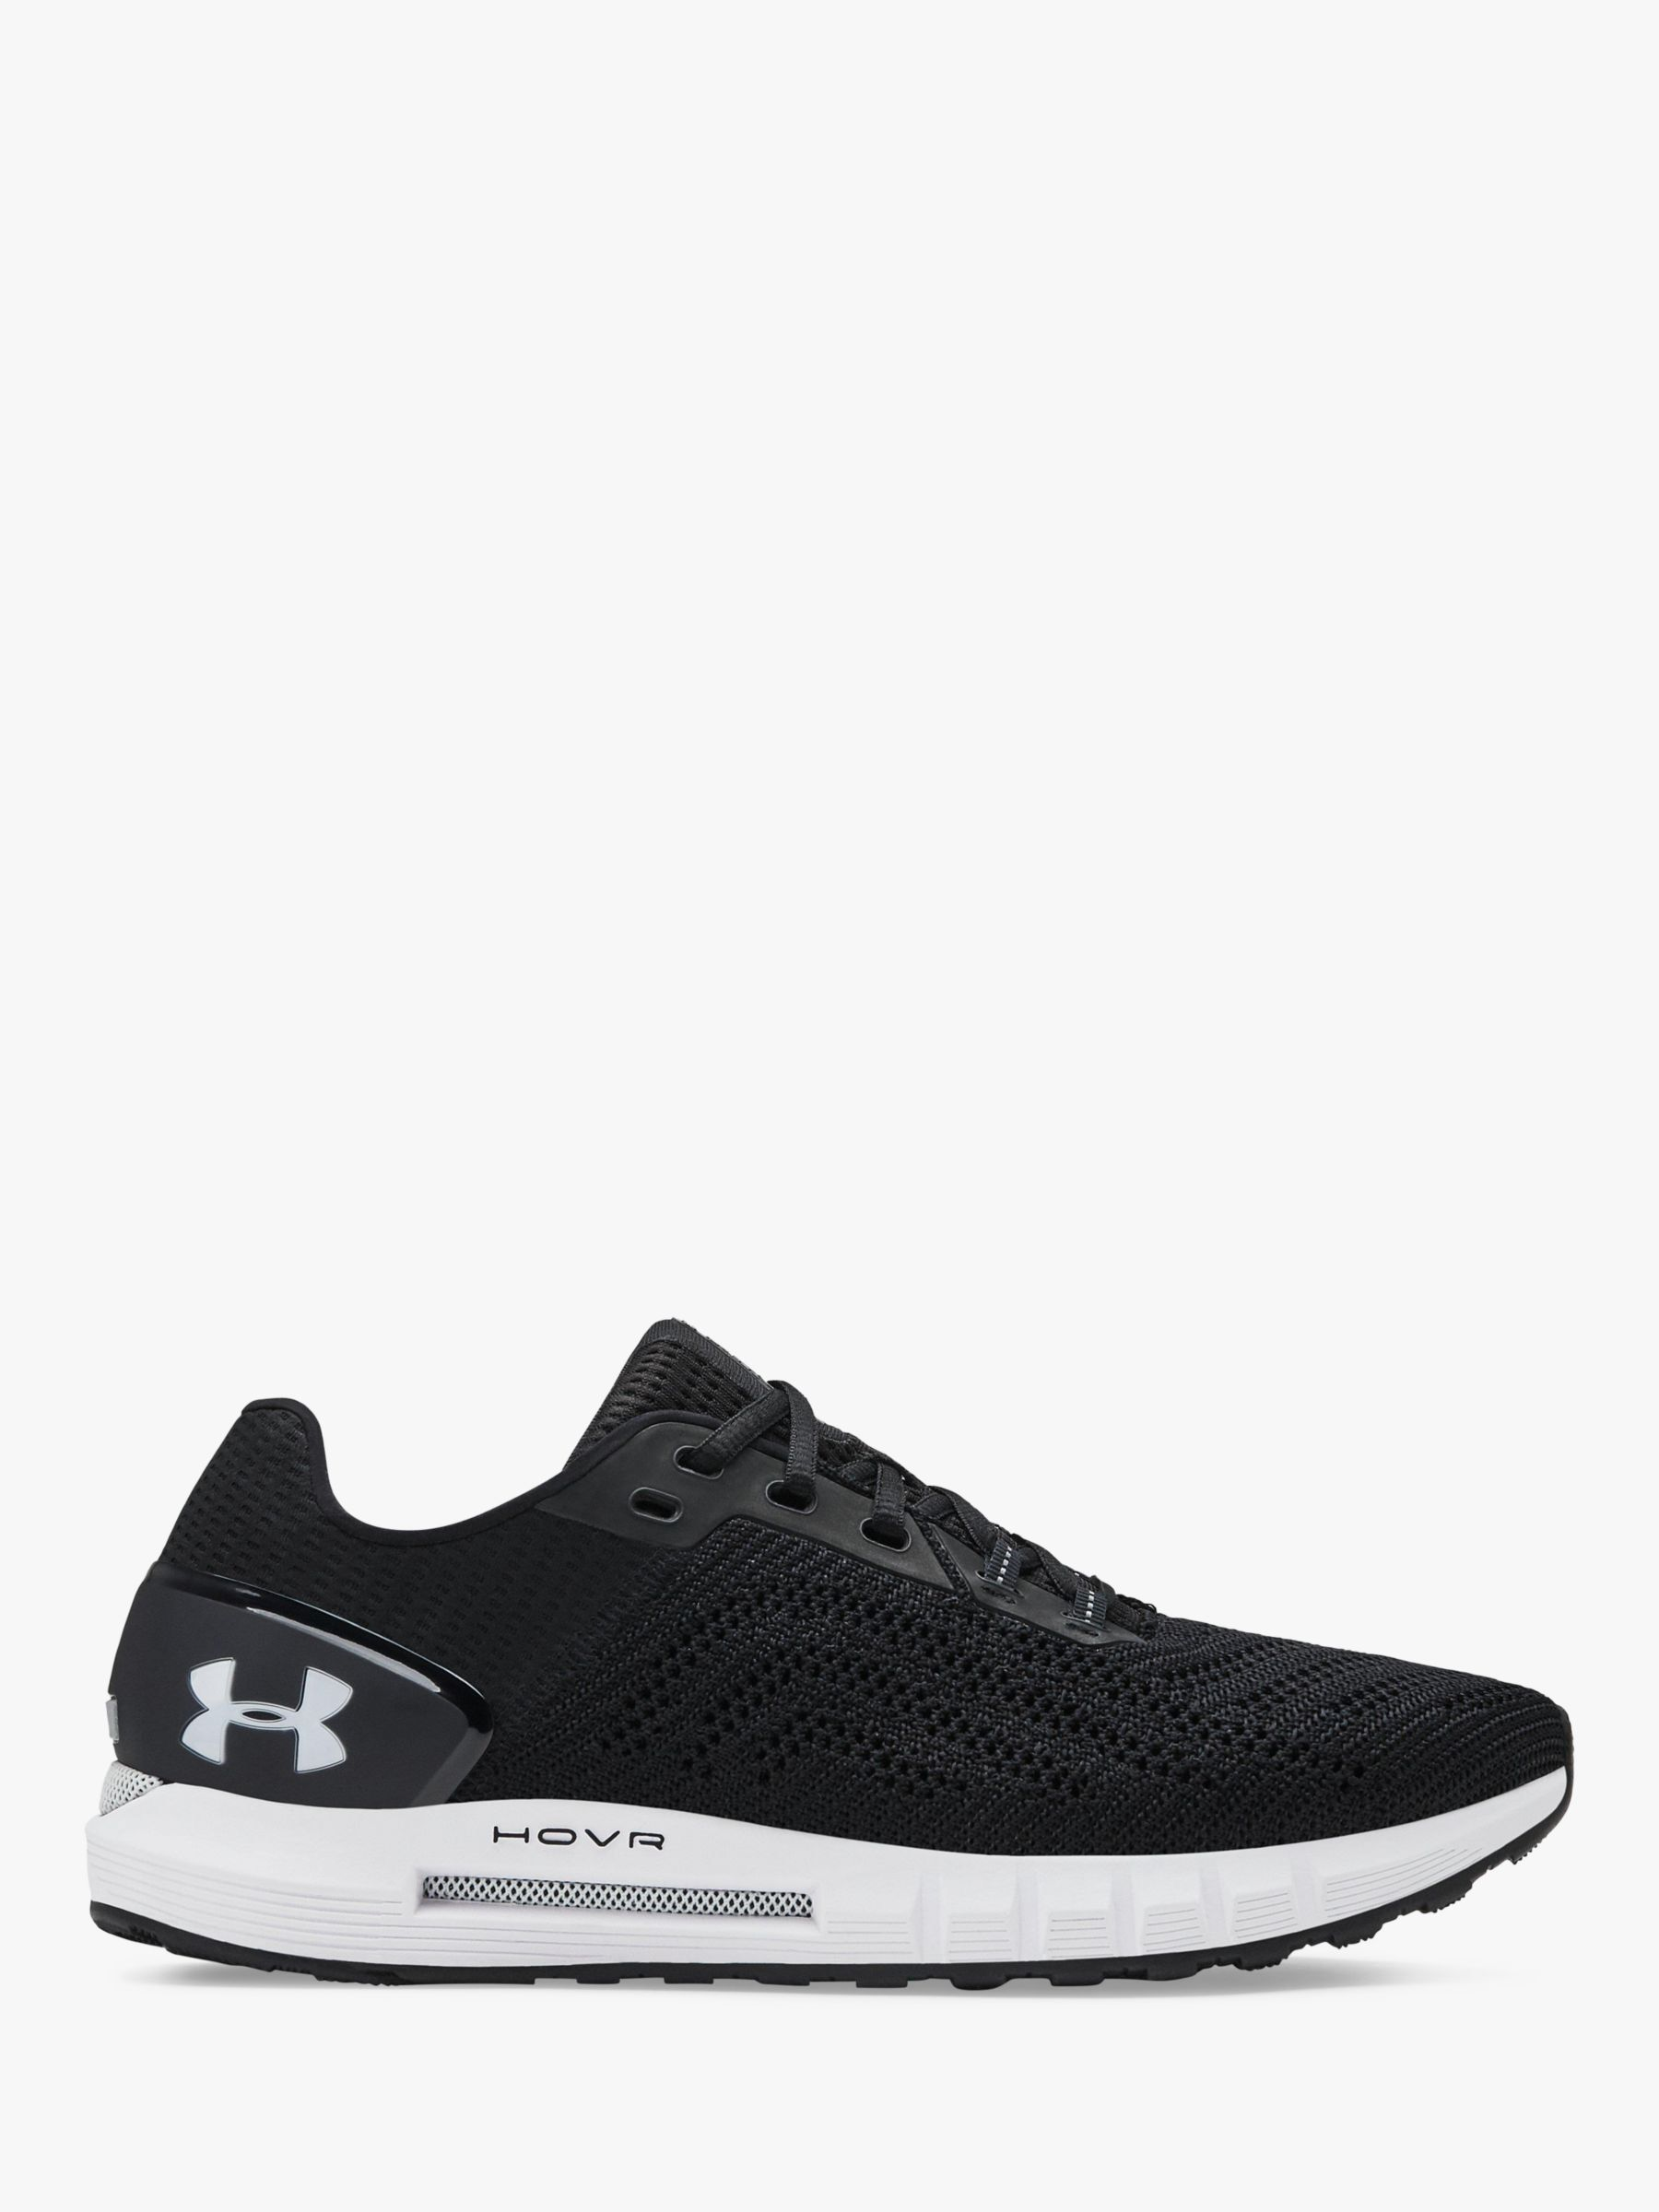 Under Armour Hovr Sonic 2 0 Men S Running Shoes Black Running Shoes For Men Running Shoes Black Running Shoes